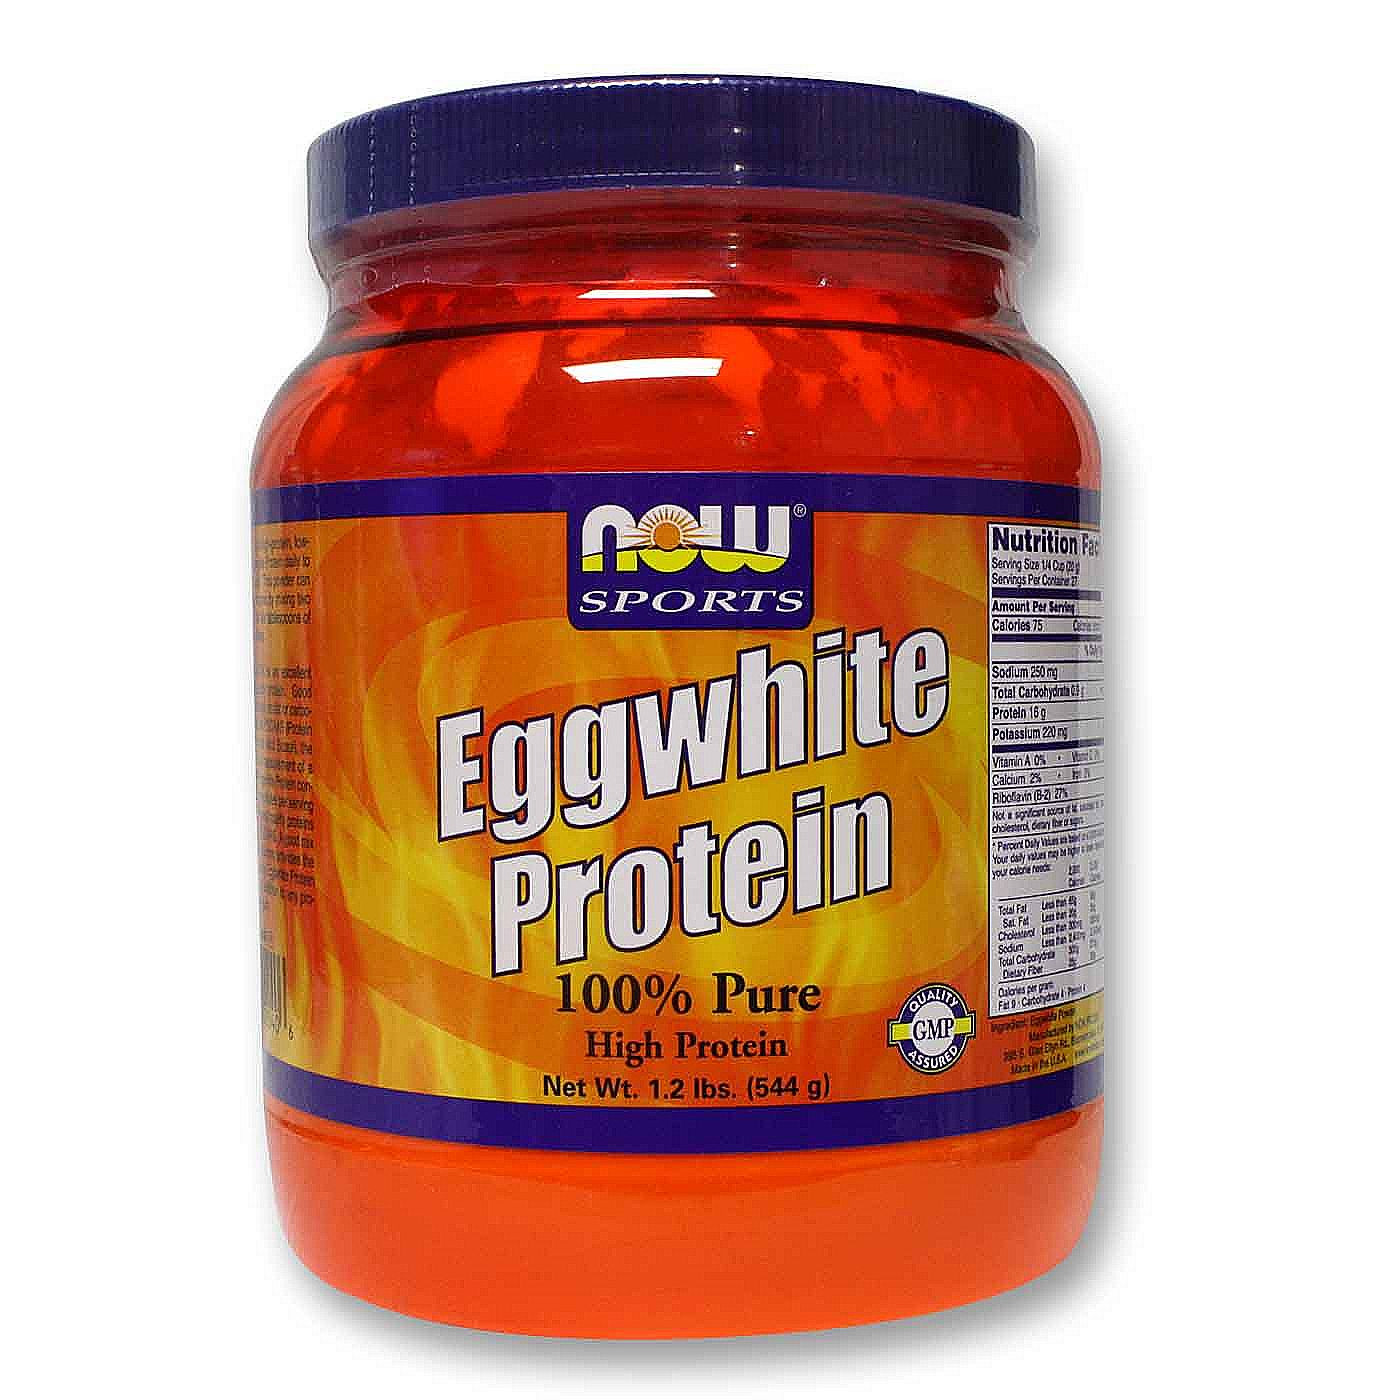 Now sports egg white protein reviews